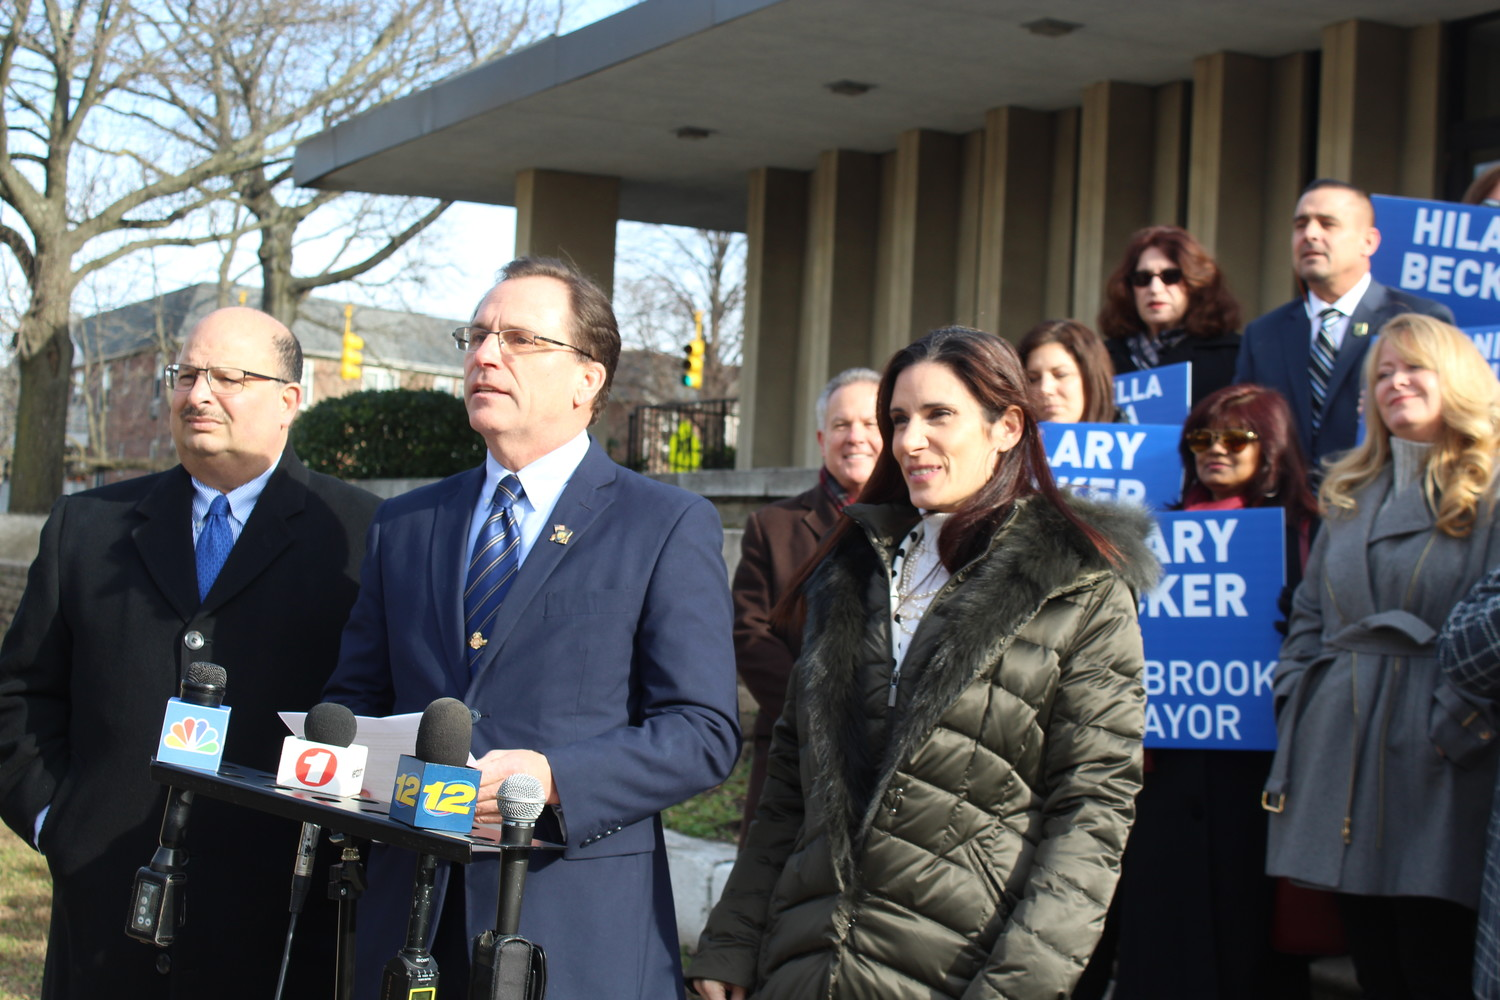 Lynbrook Deputy Mayor Hilary Becker, center, announced his candidacy for mayor at a news conference outside Village Hall on Jan. 2. He will challenge incumbent Alan Beach during the village elections on March 19.